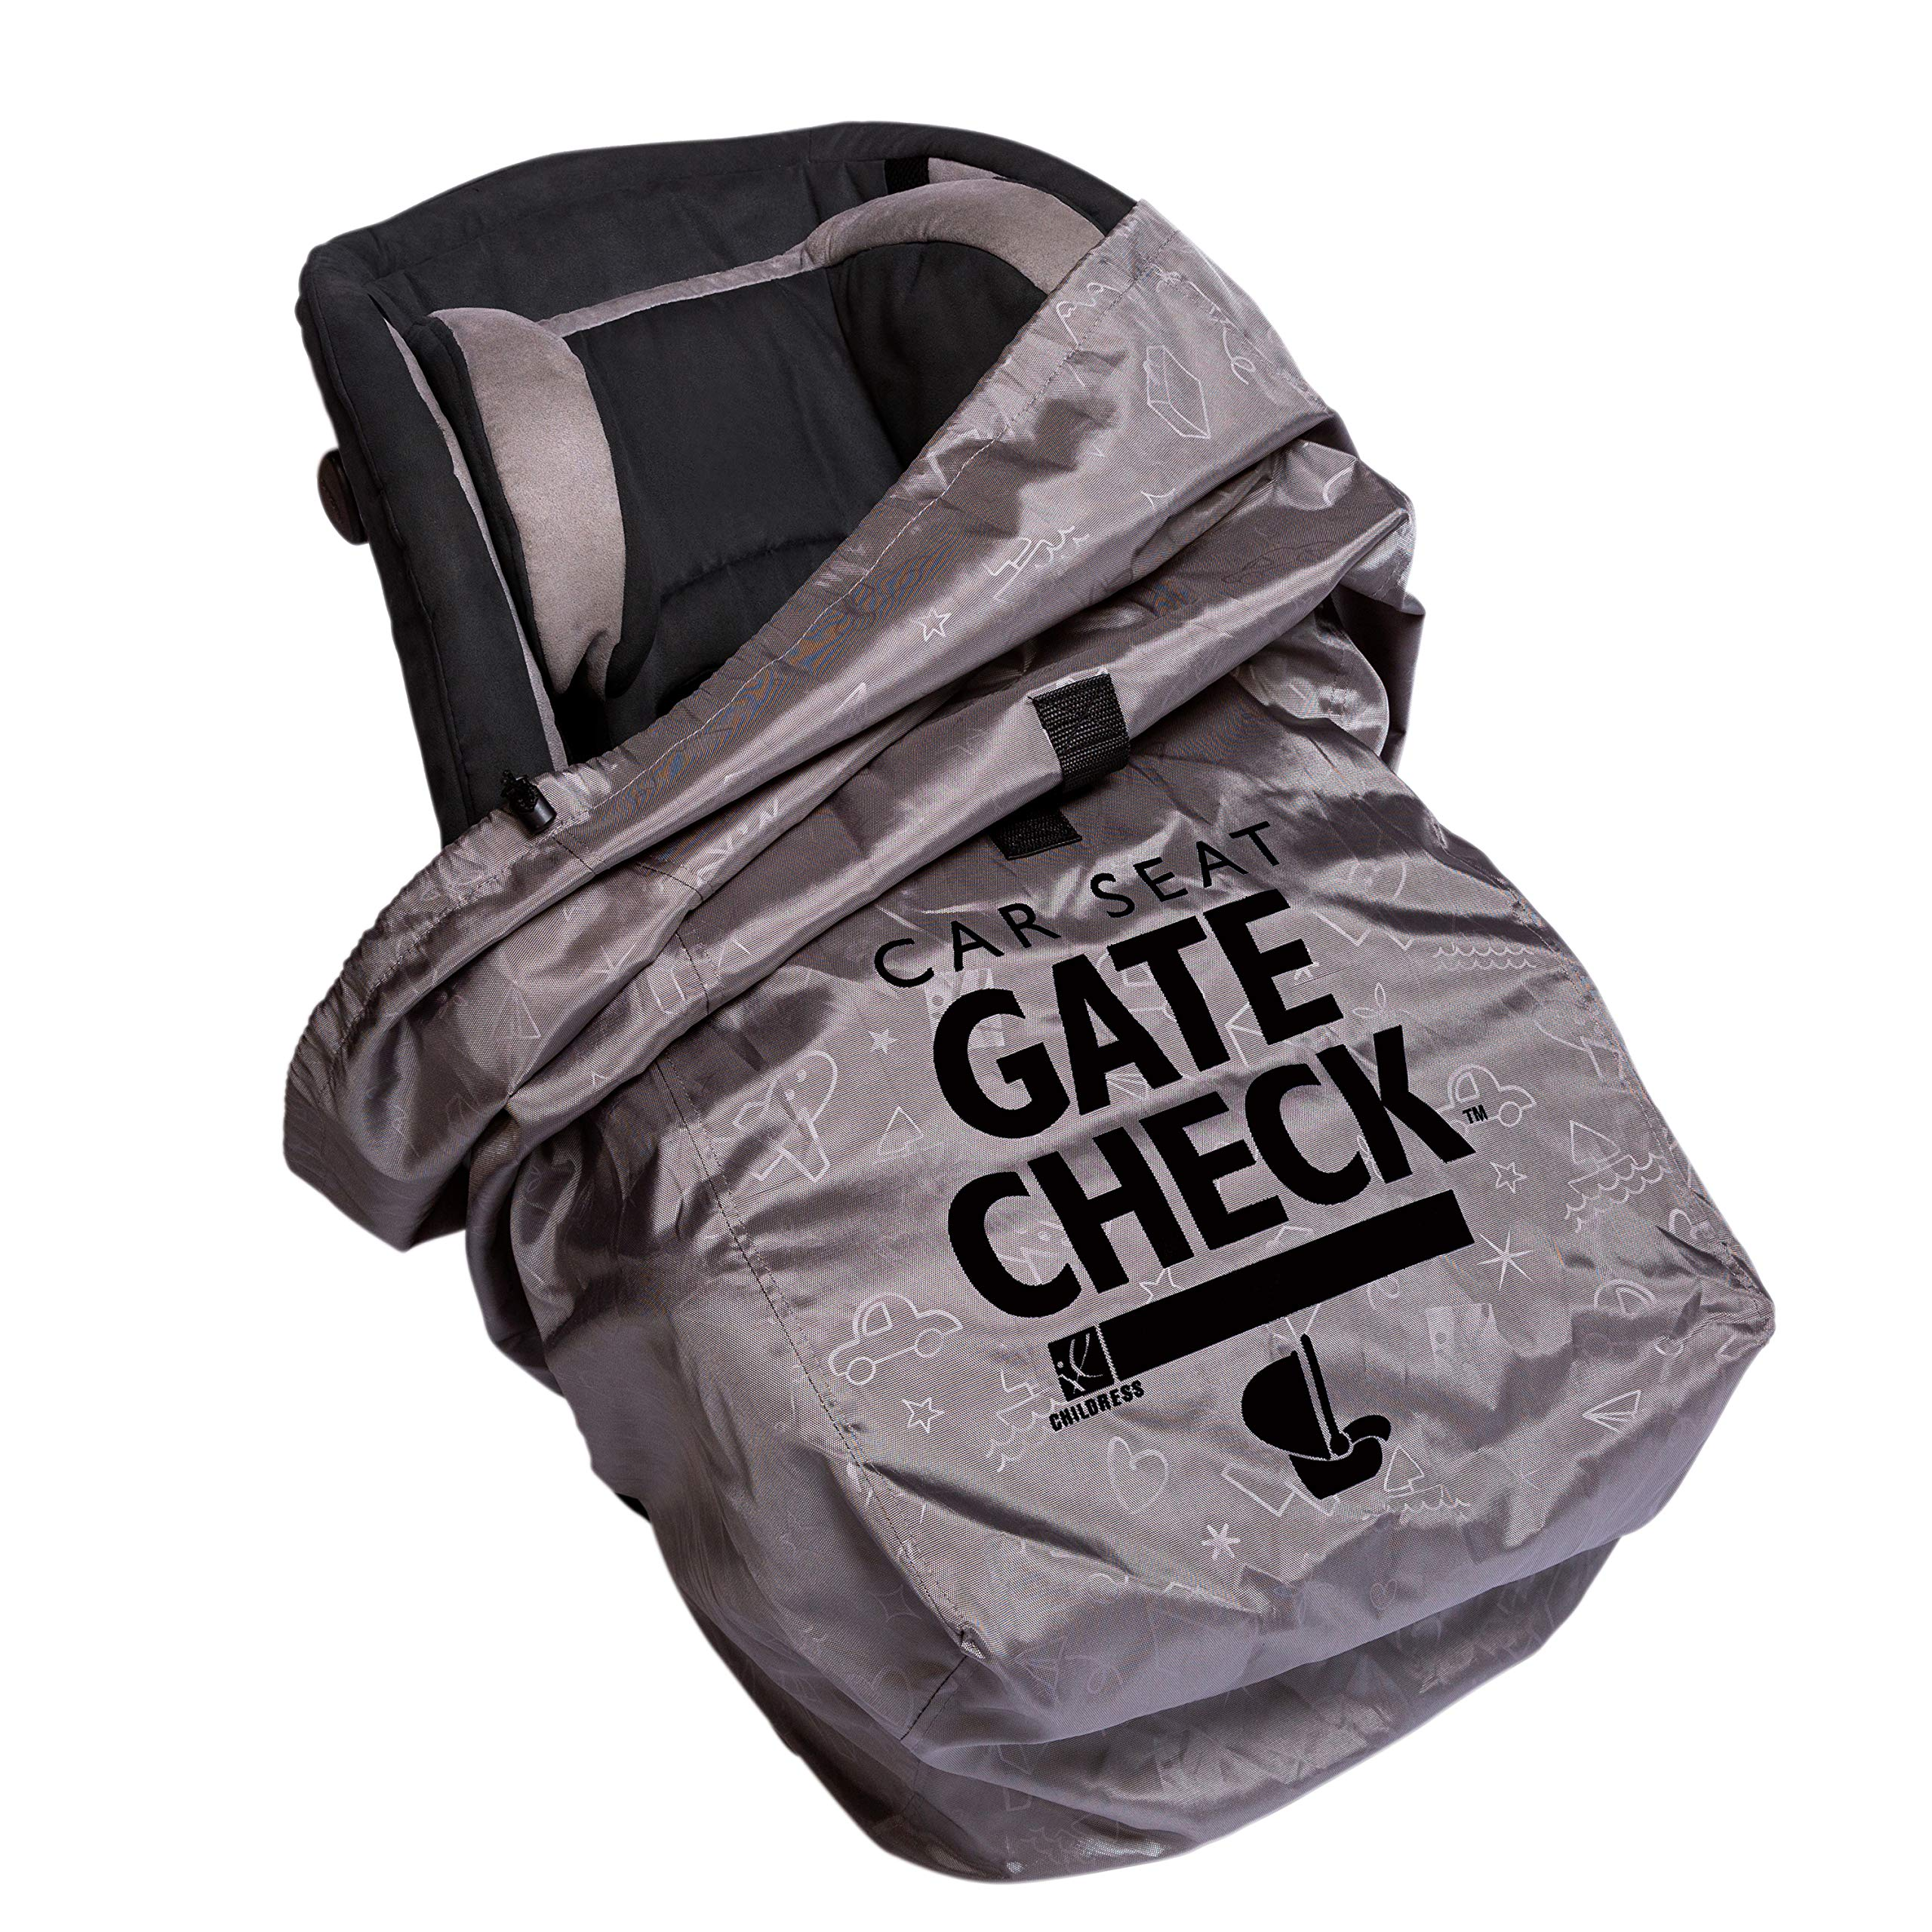 J.L. Childress DELUXE Gate Check Bag for Car Seats - Premium Heavy-Duty Durable Air Travel Bag, Backpack Straps - Fits Convertible Car Seats, Infant carriers & Booster Seats, Grey by J.L. Childress